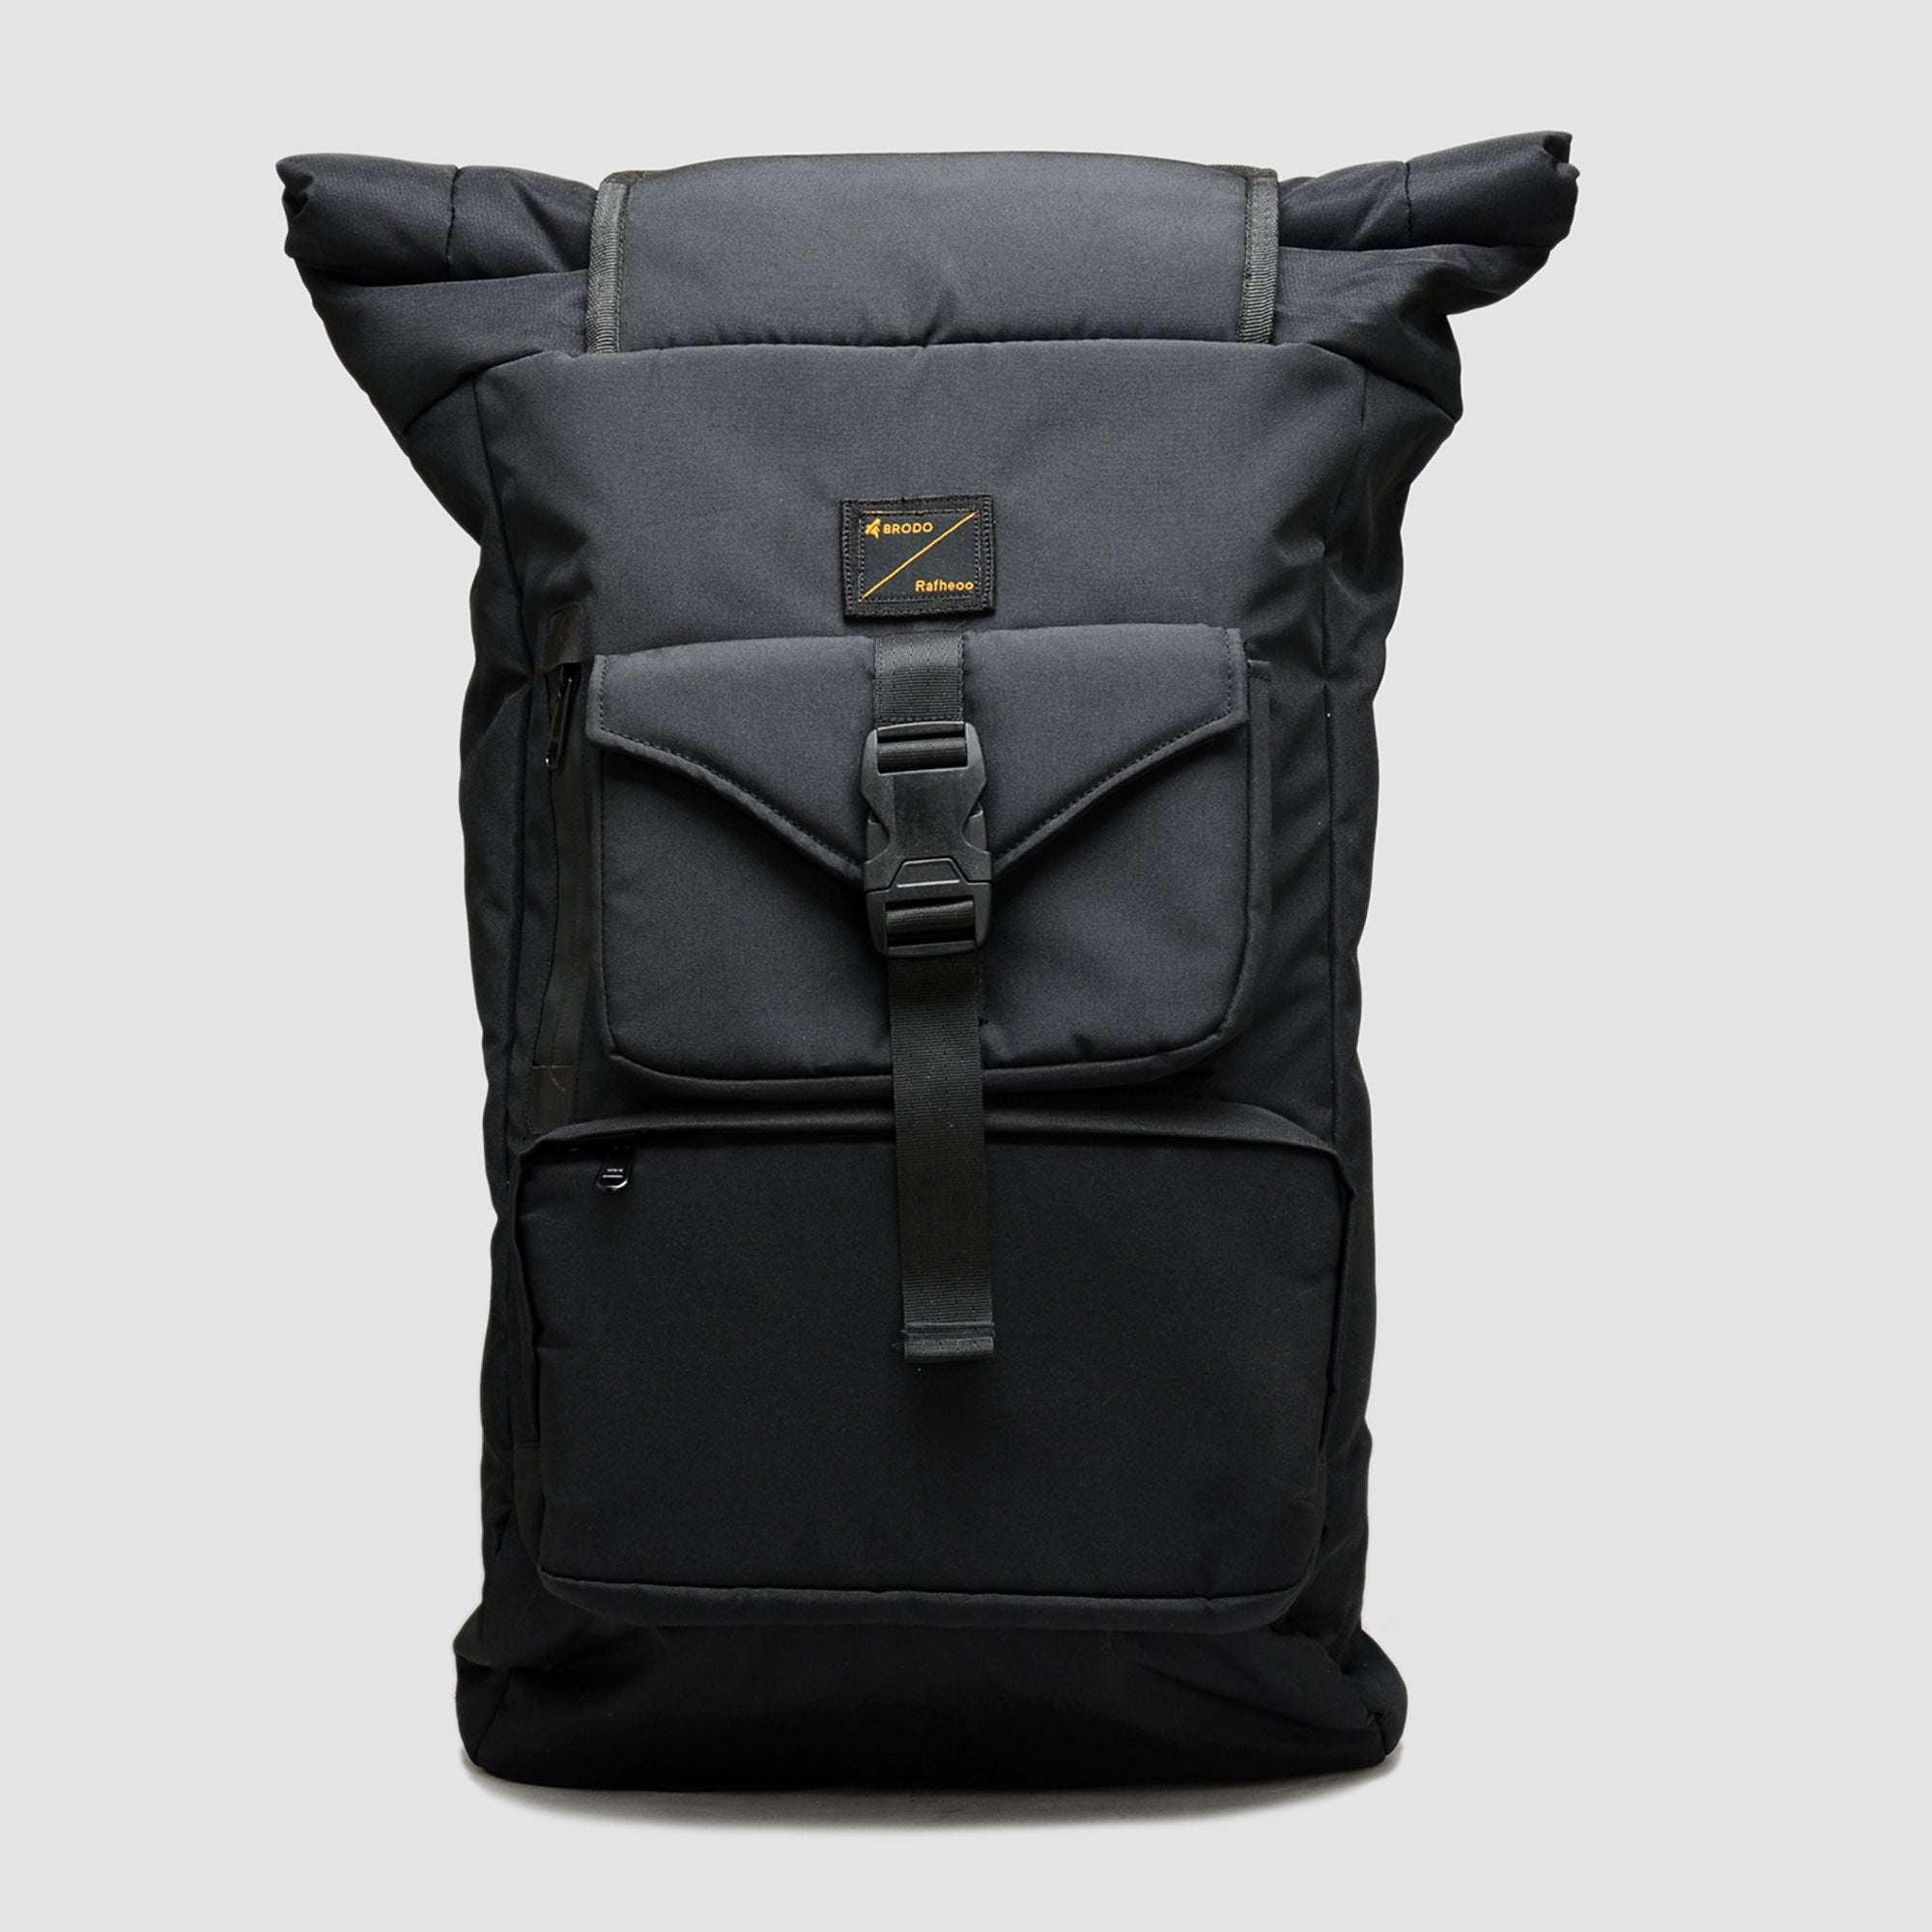 Brodo x Rafheoo Backpack